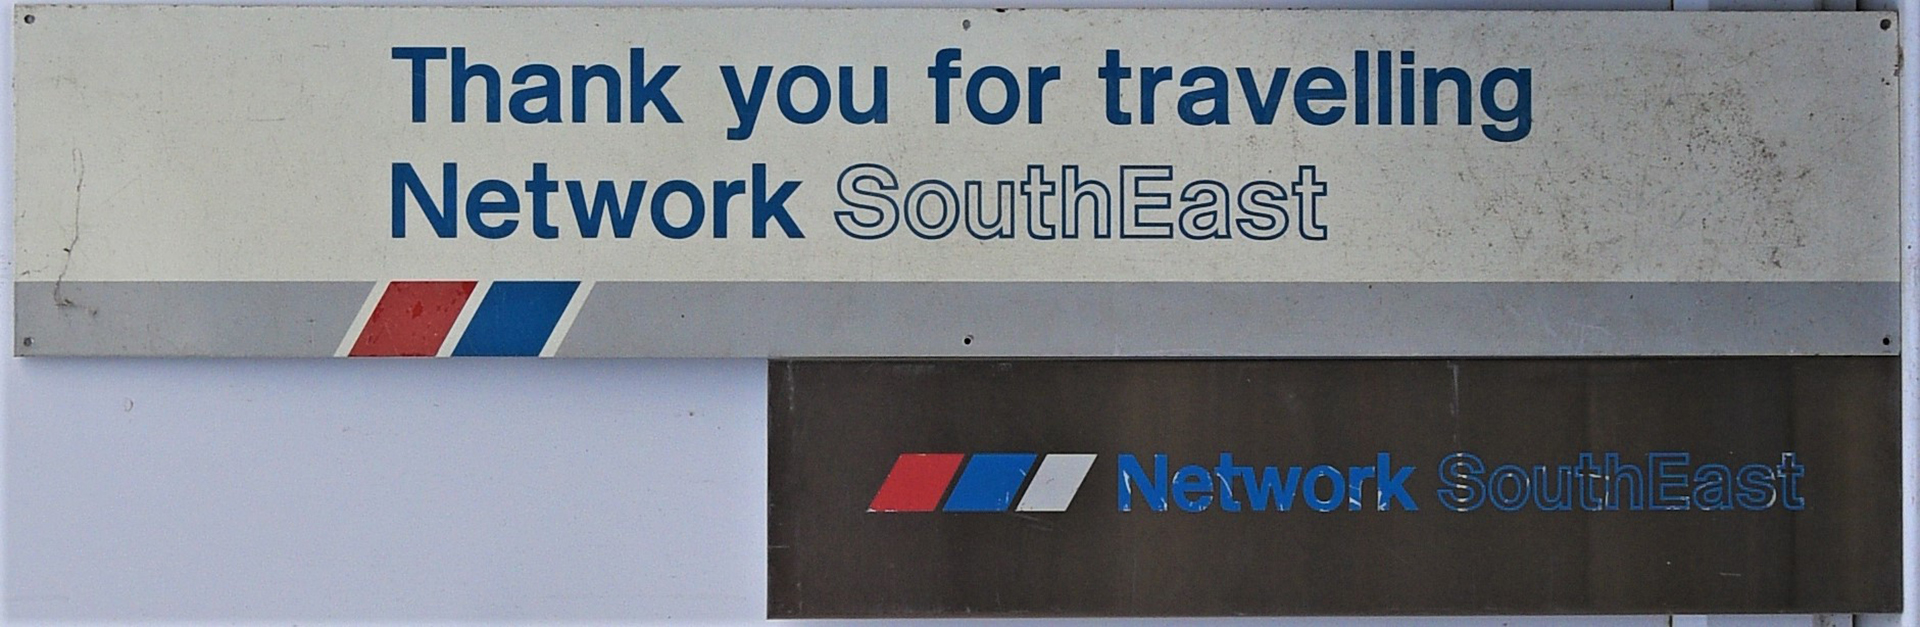 Network South East Stainless Steel Station Sign. THANK YOU FOR TRAVELLING NETWORK SOUTH EAST.